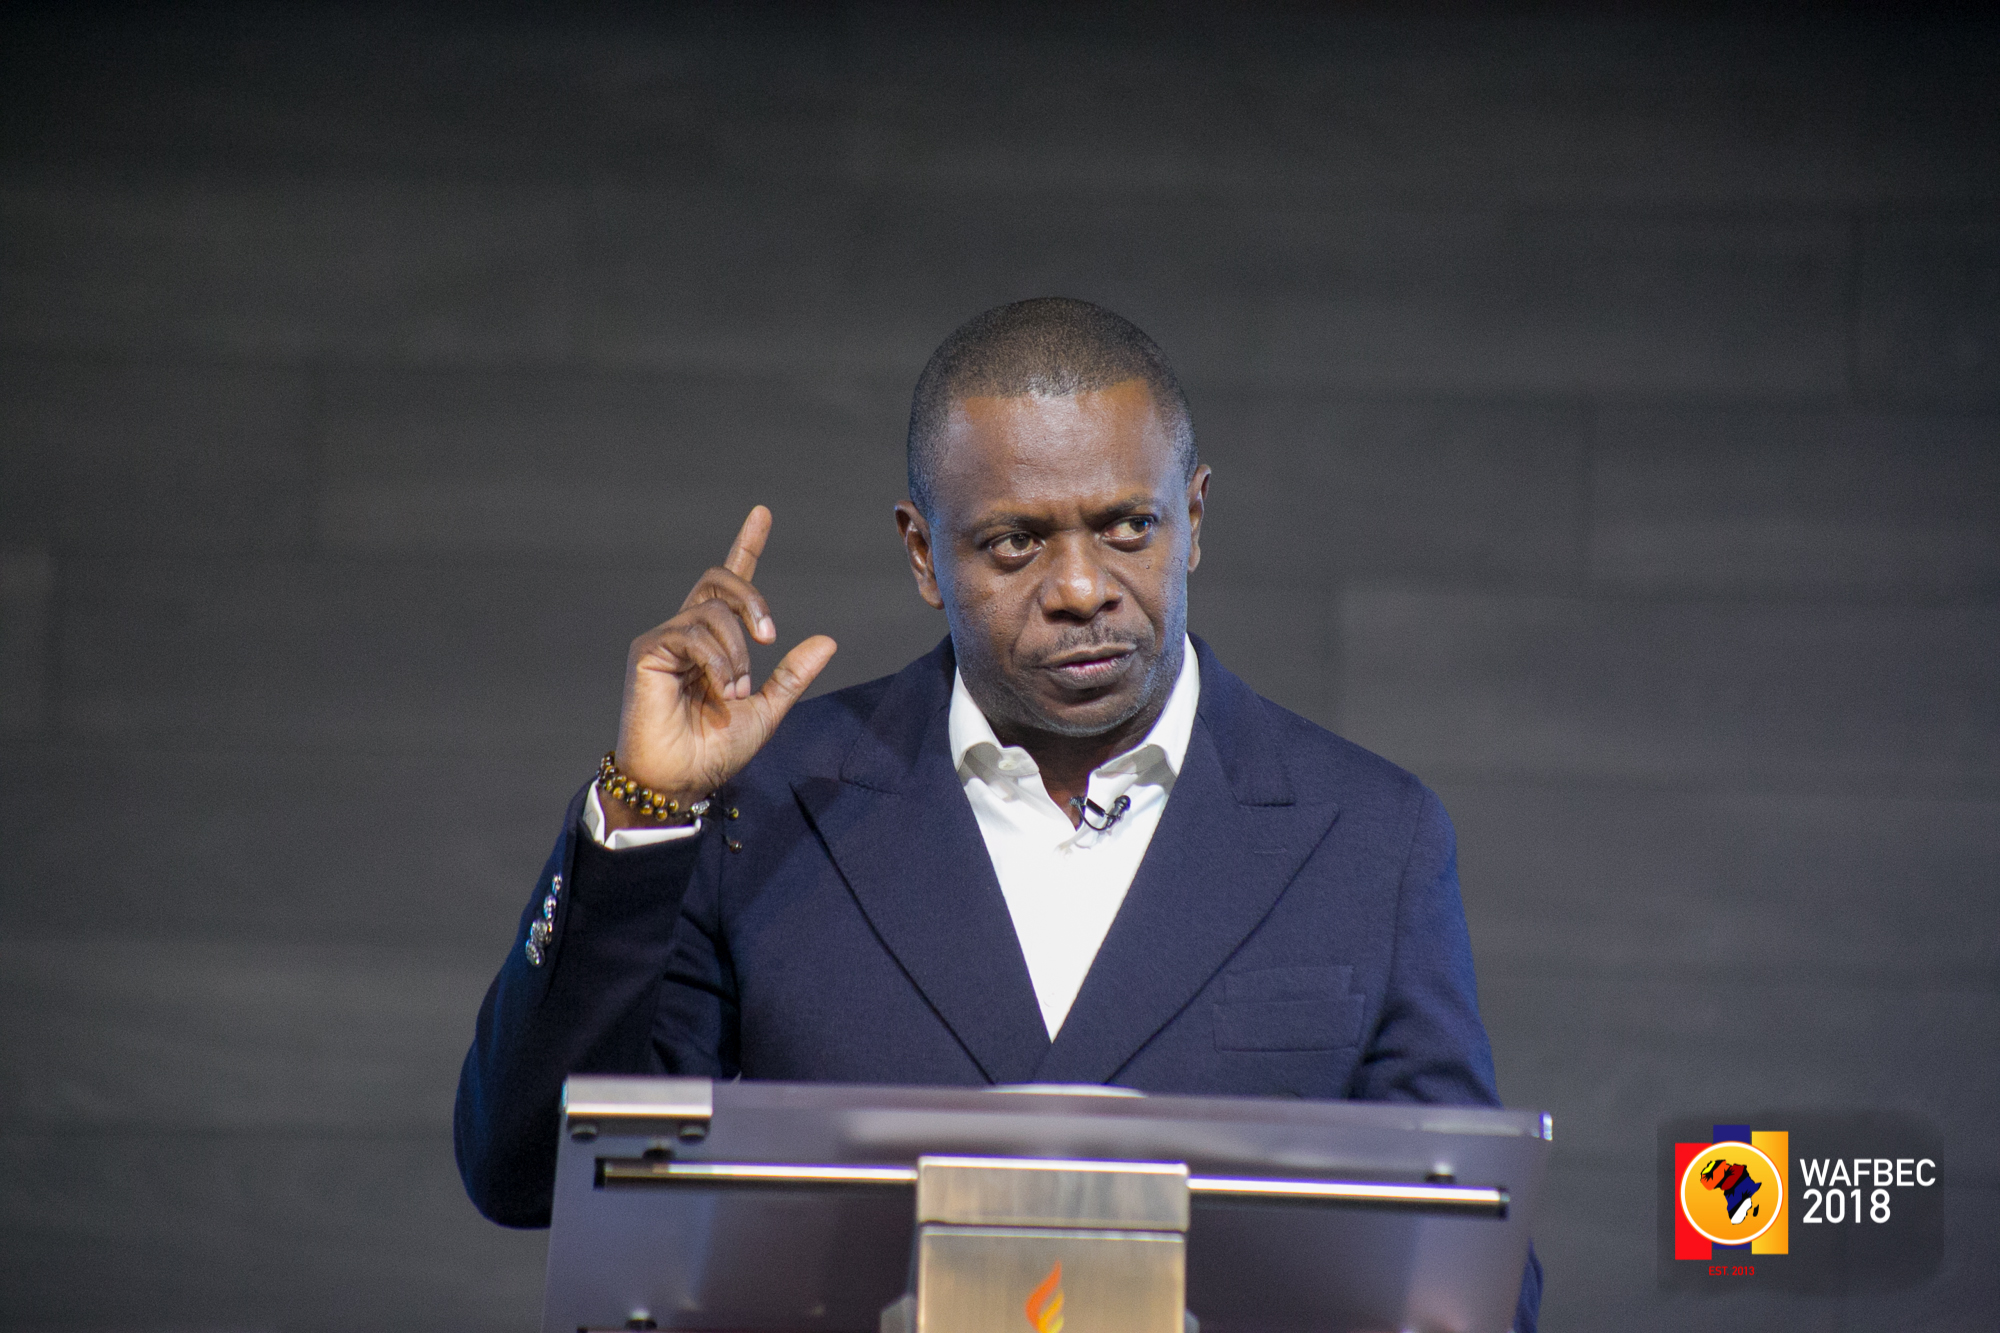 WAFBEC 2018 – DAY 4 (AFTERNOON SESSION 3) with Pastor 'Poju Oyemade